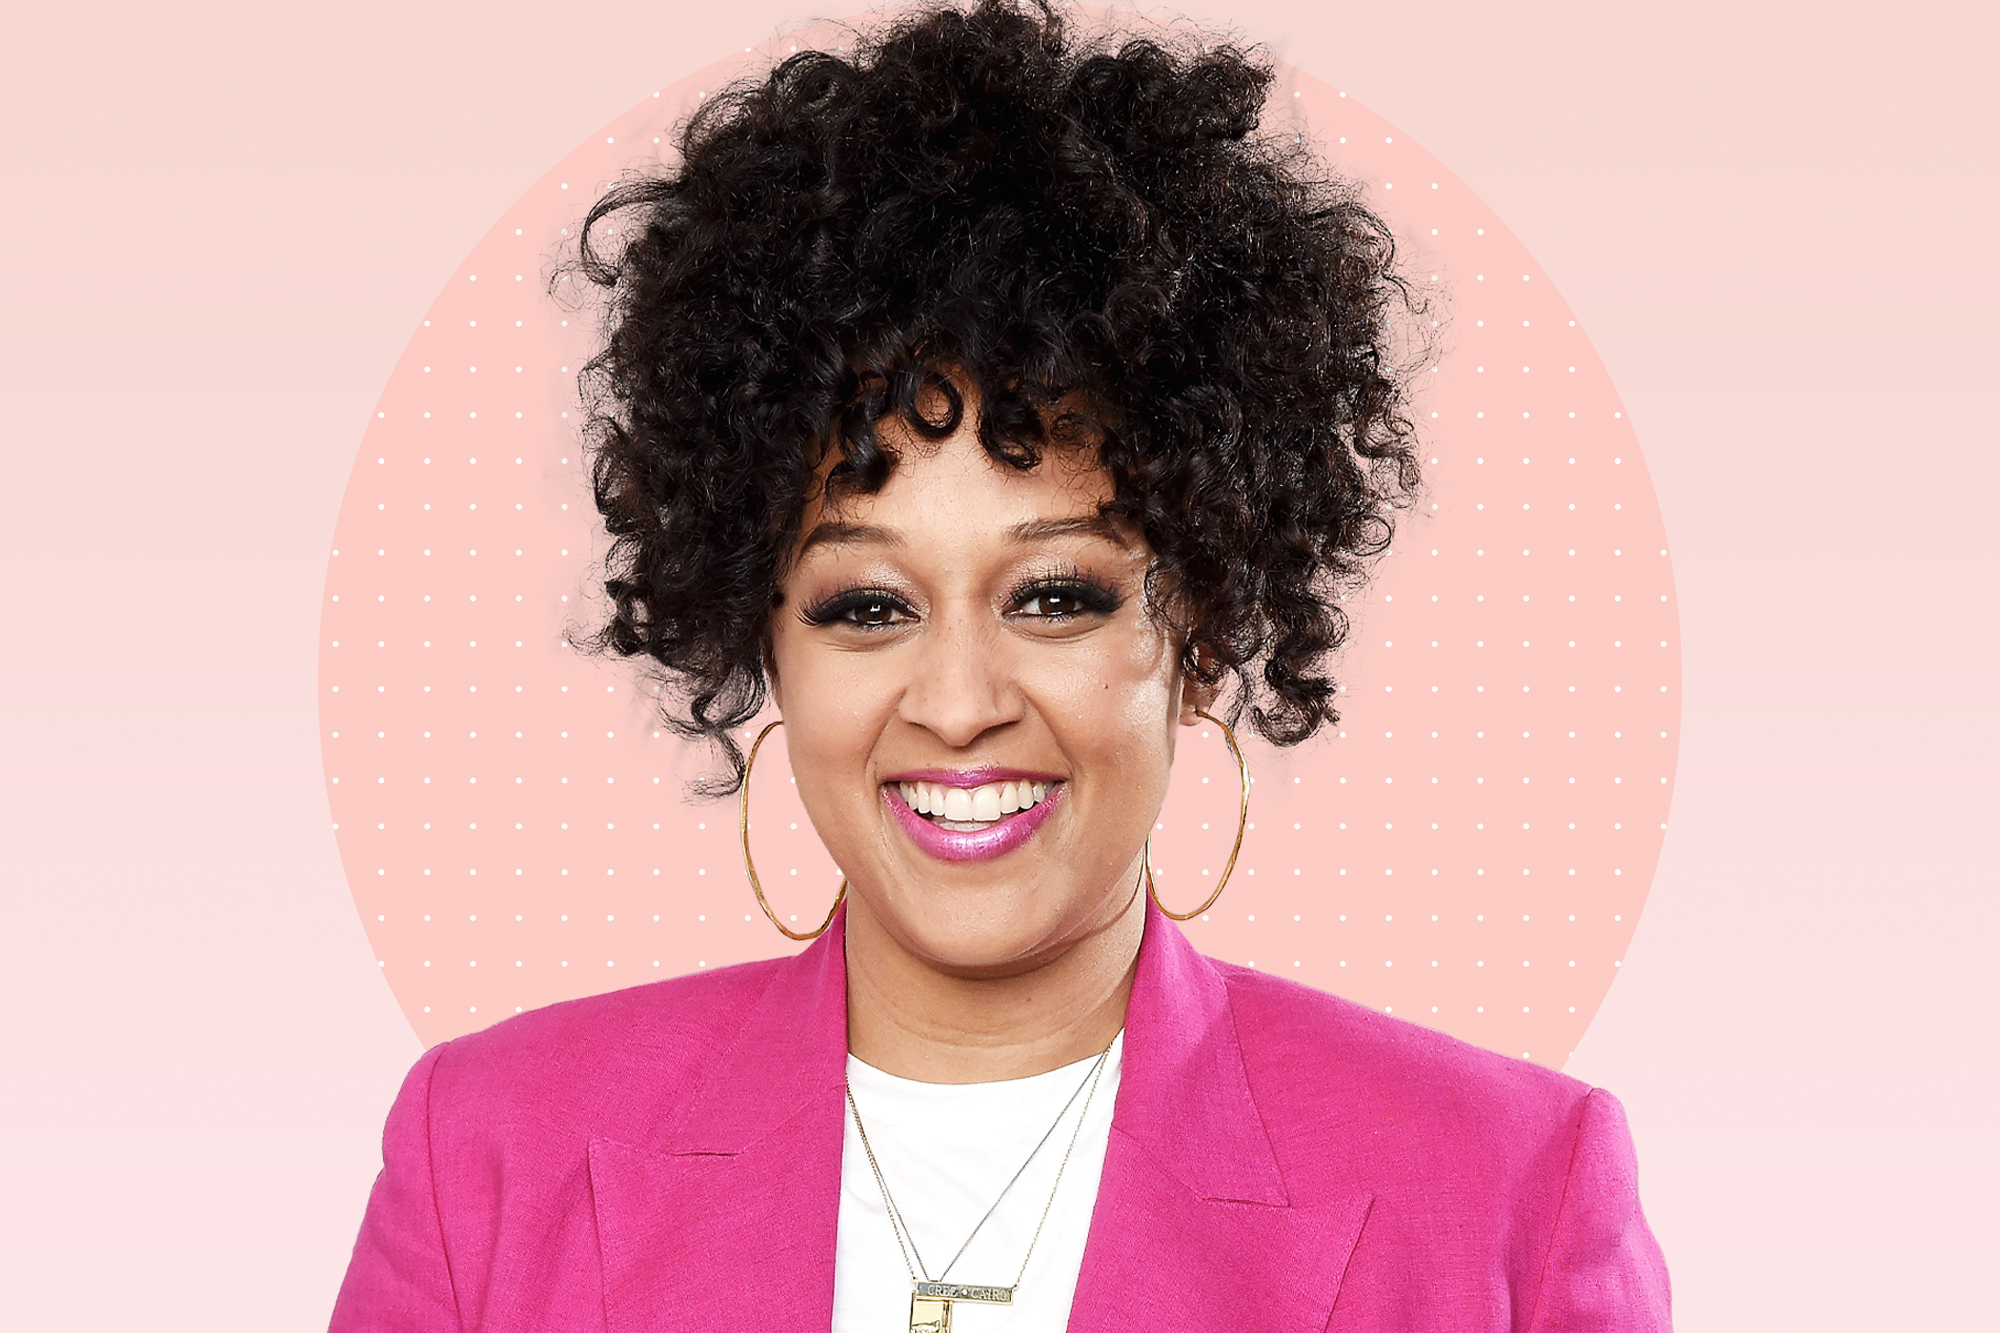 a portrait of Tia Mowry on a designed background